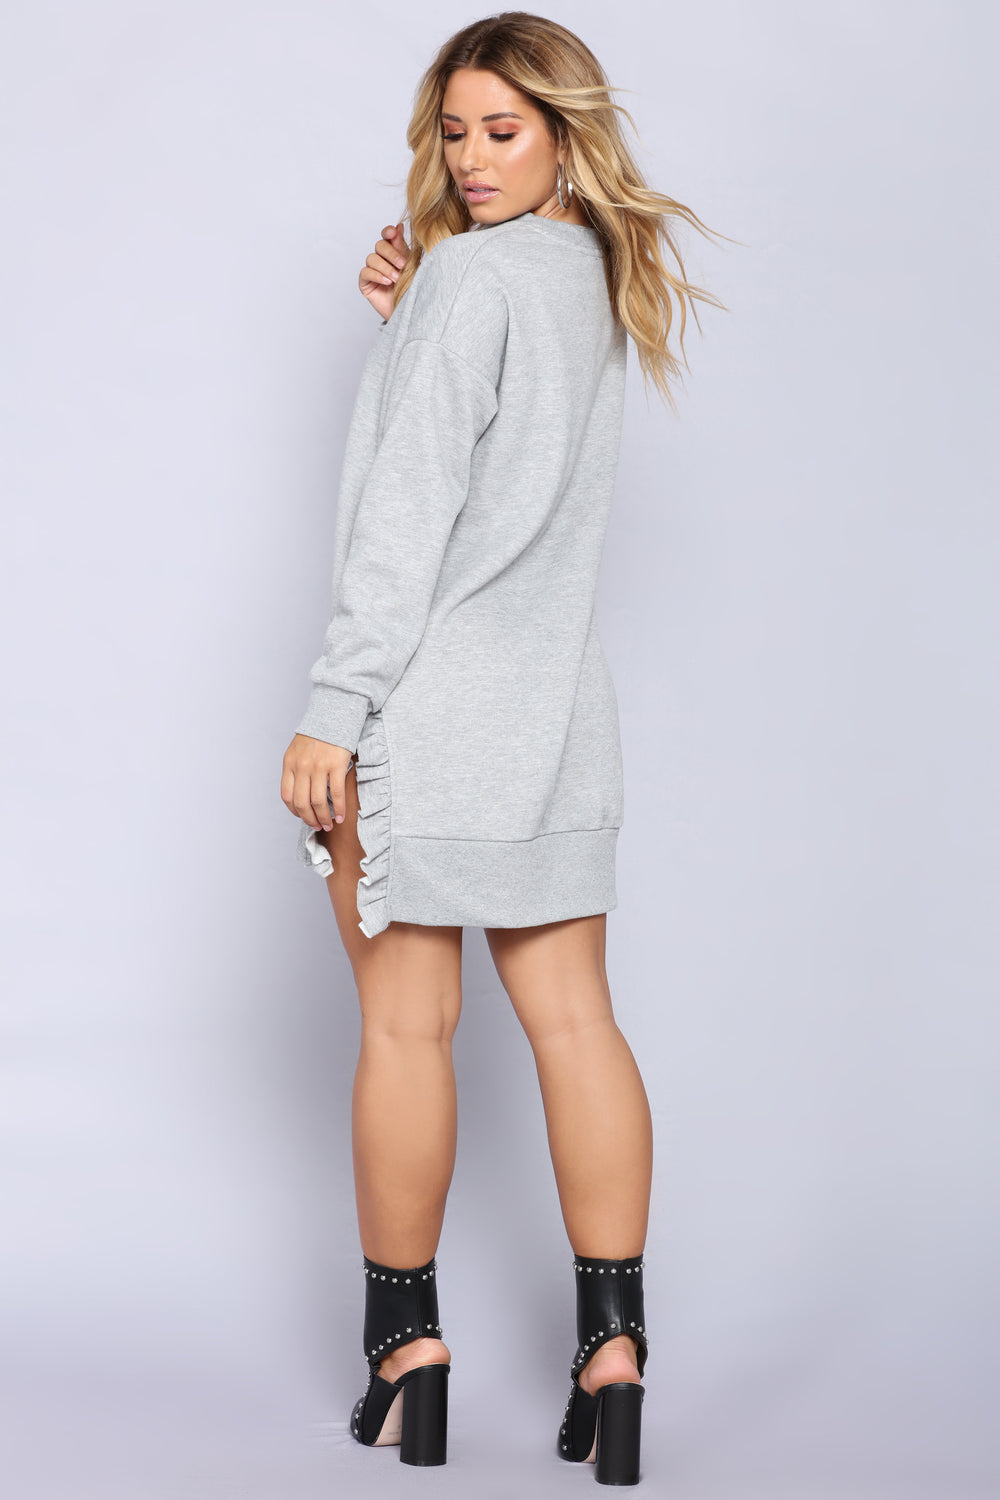 Nala Ruffle Tunic - Heather Grey